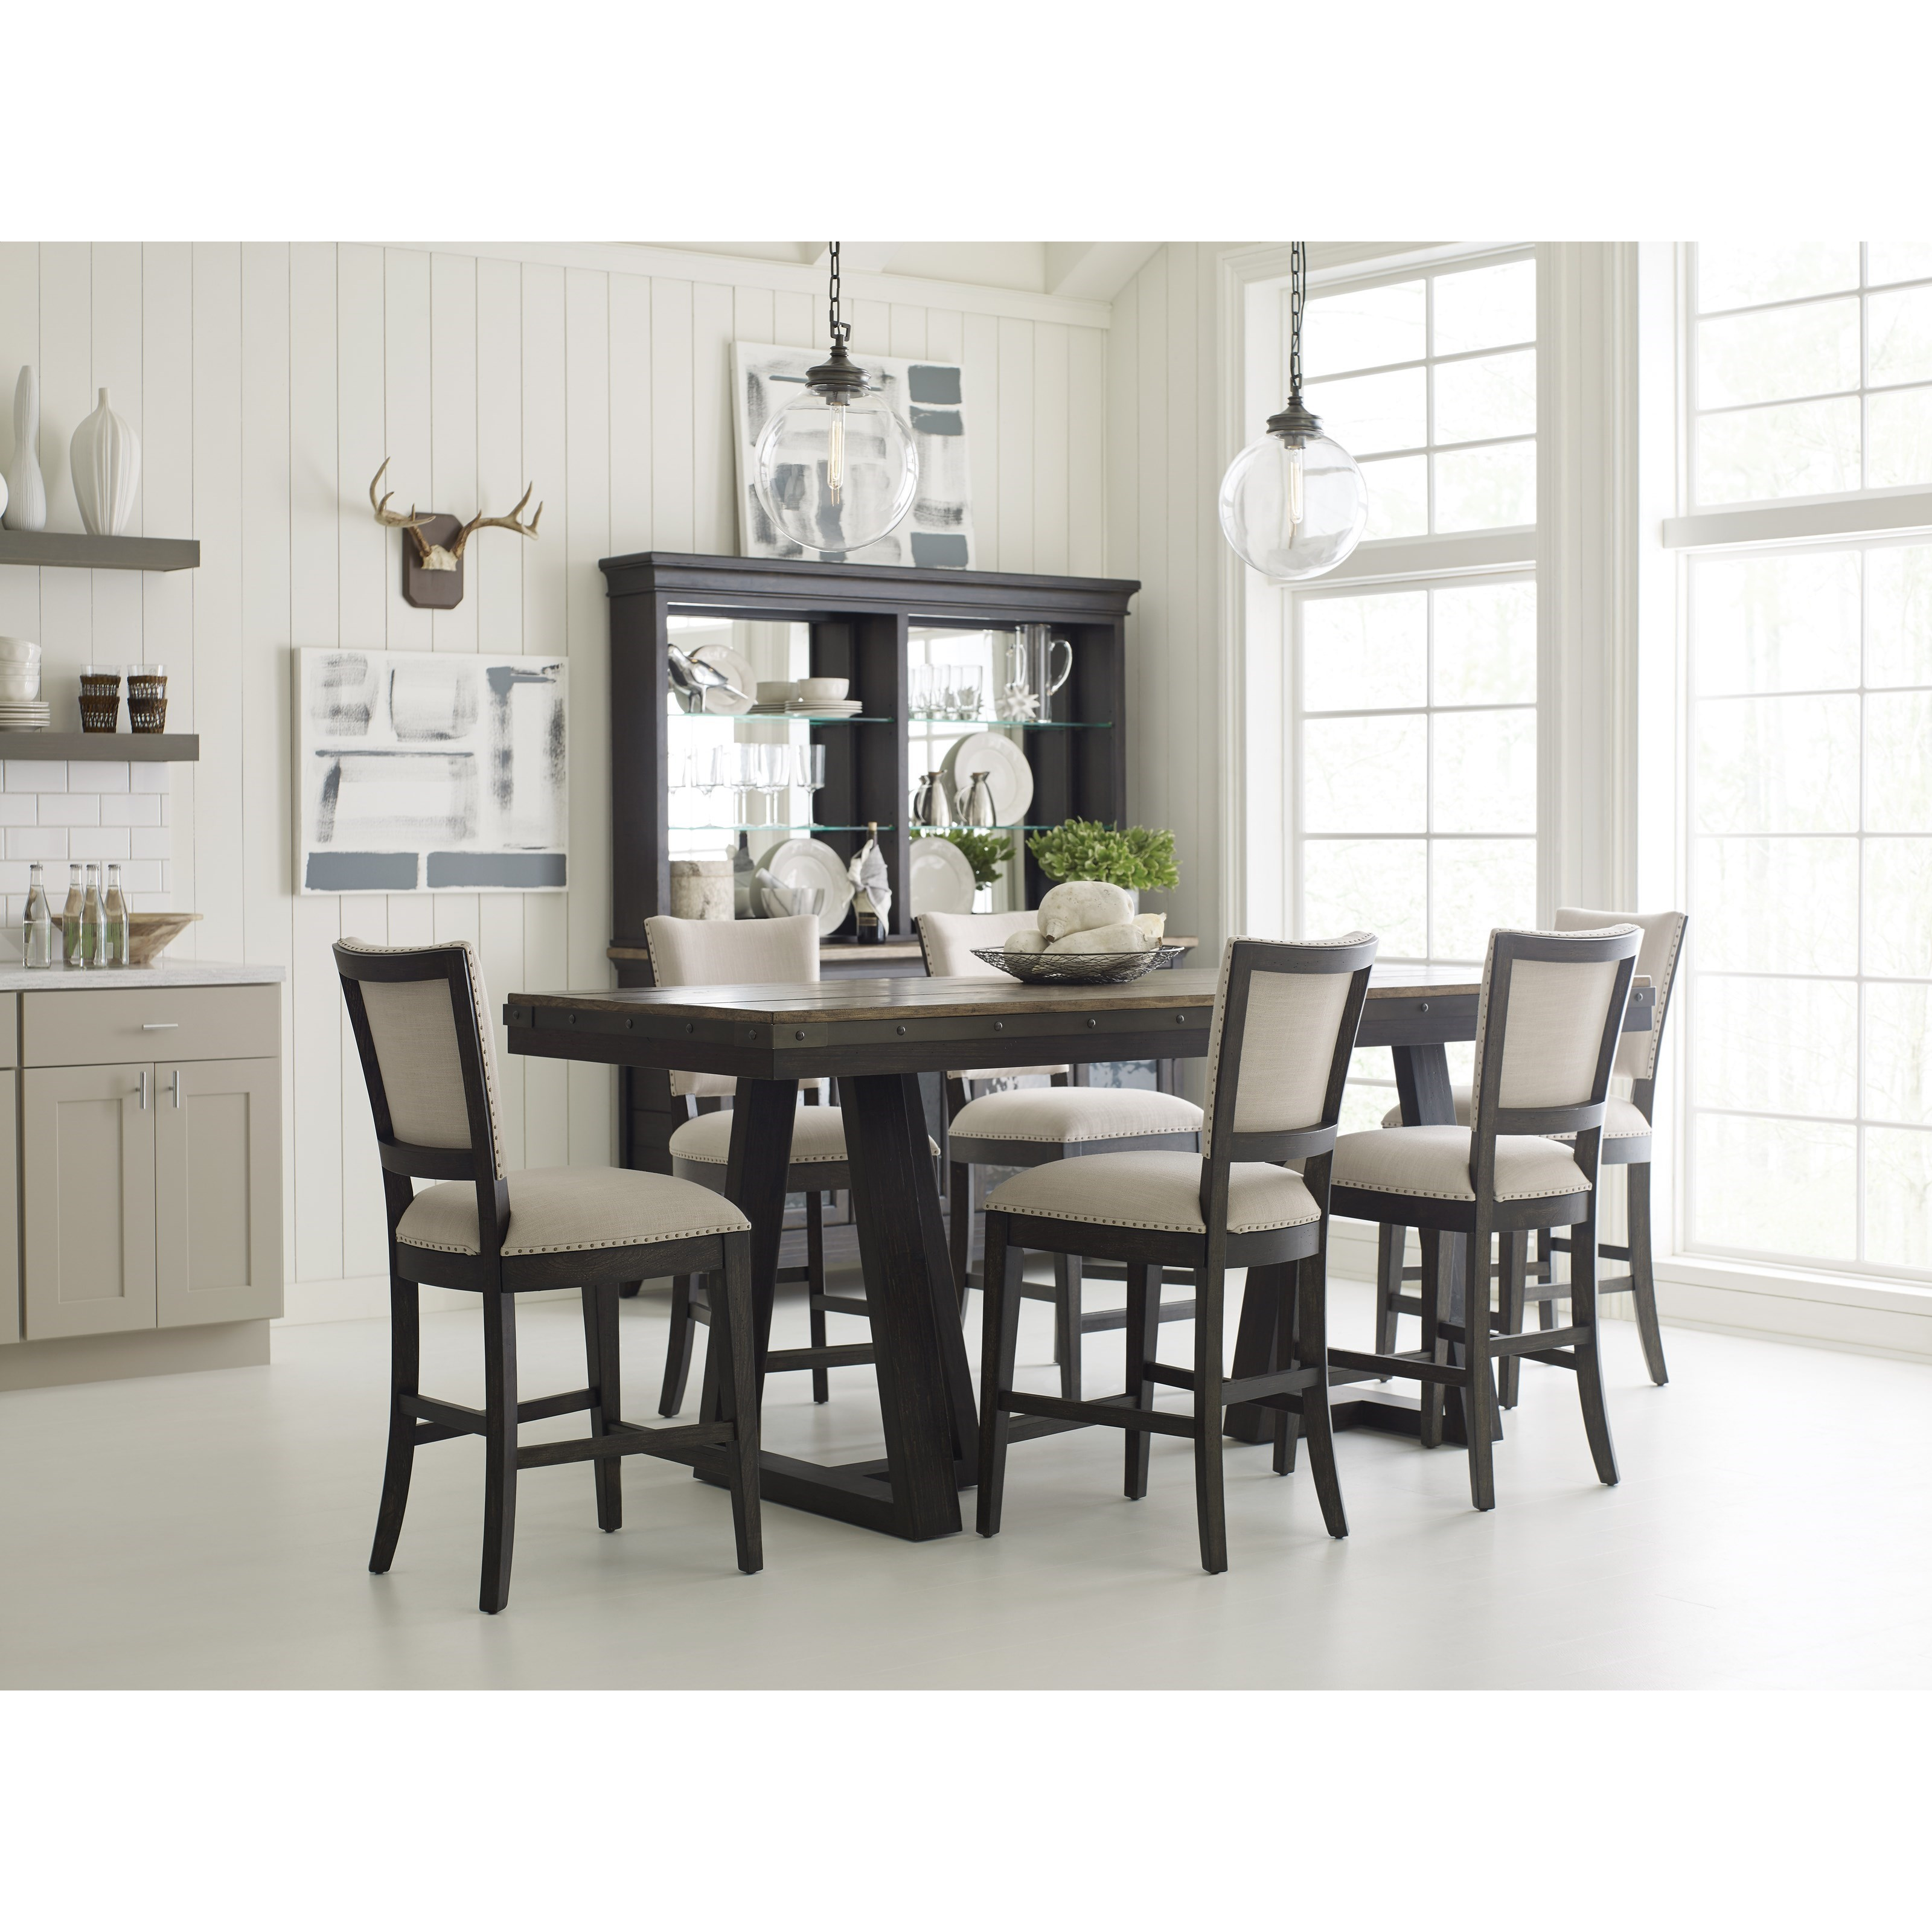 Kincaid Furniture Plank Road Kimler Solid Wood Counter Height Dining Table Belfort Furniture Pub Tables